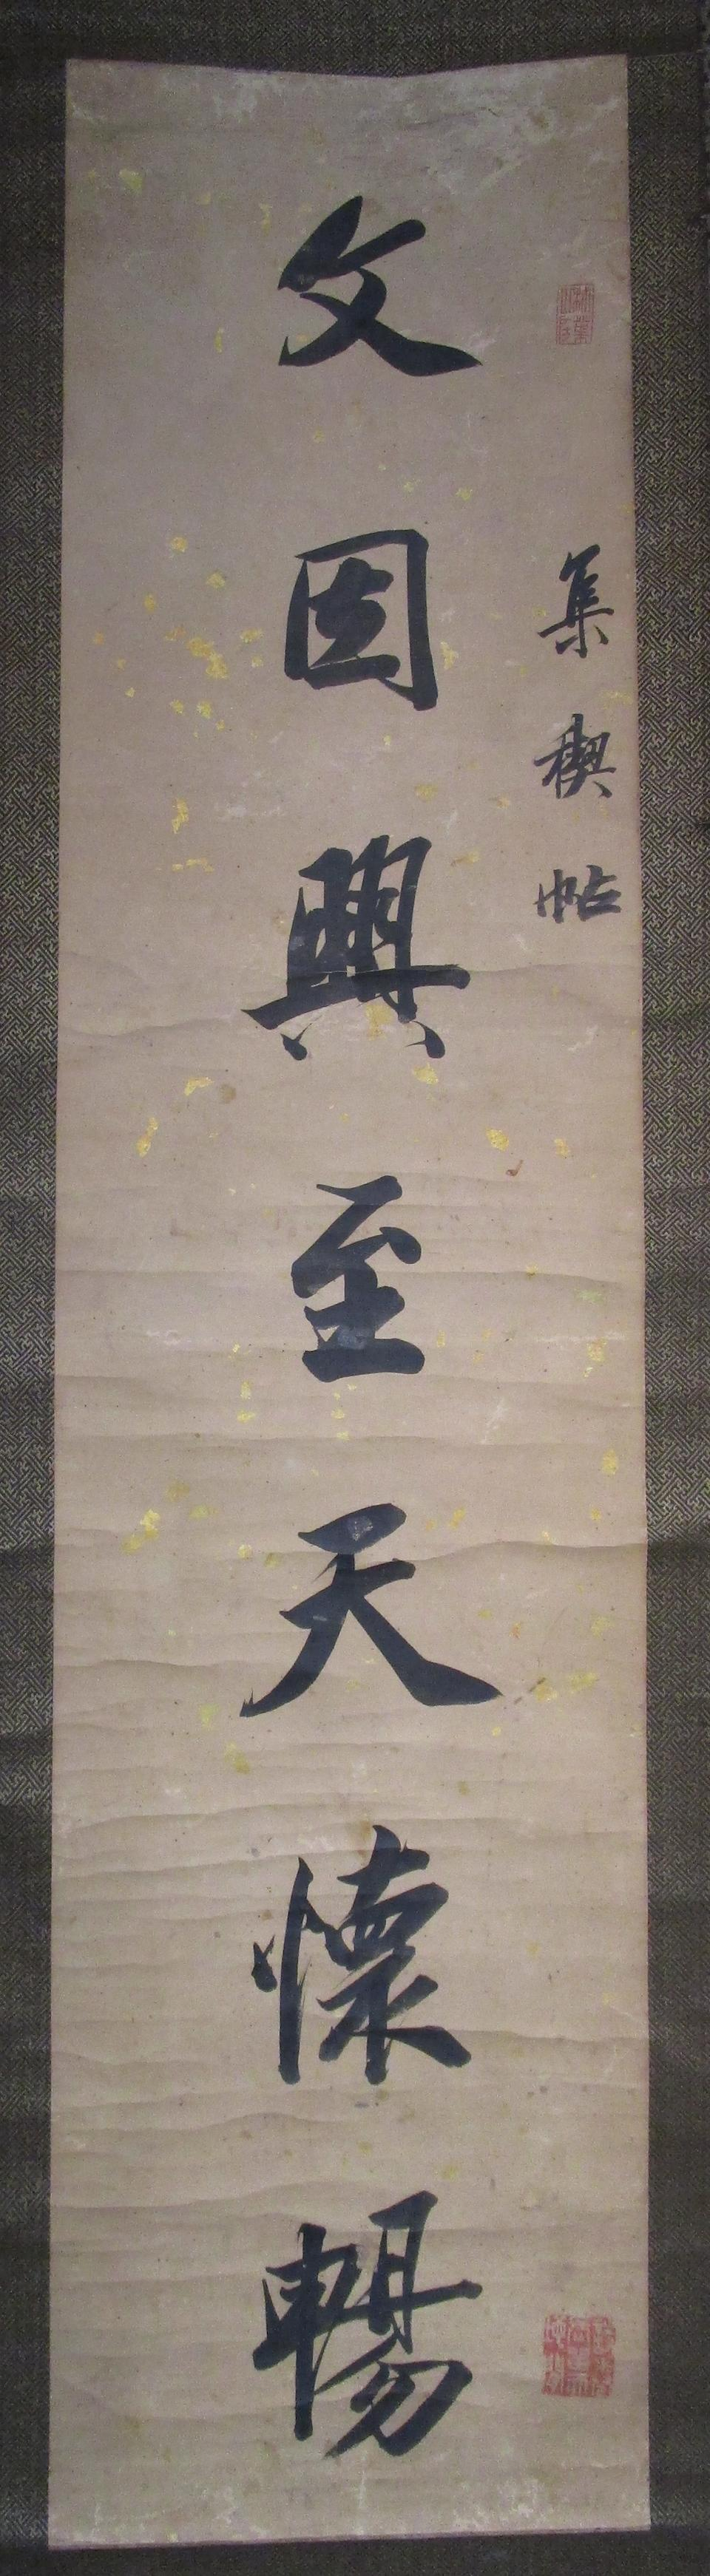 Wang Wenzhi (1730-1802)  Couplet of Calligraphy in Running Script